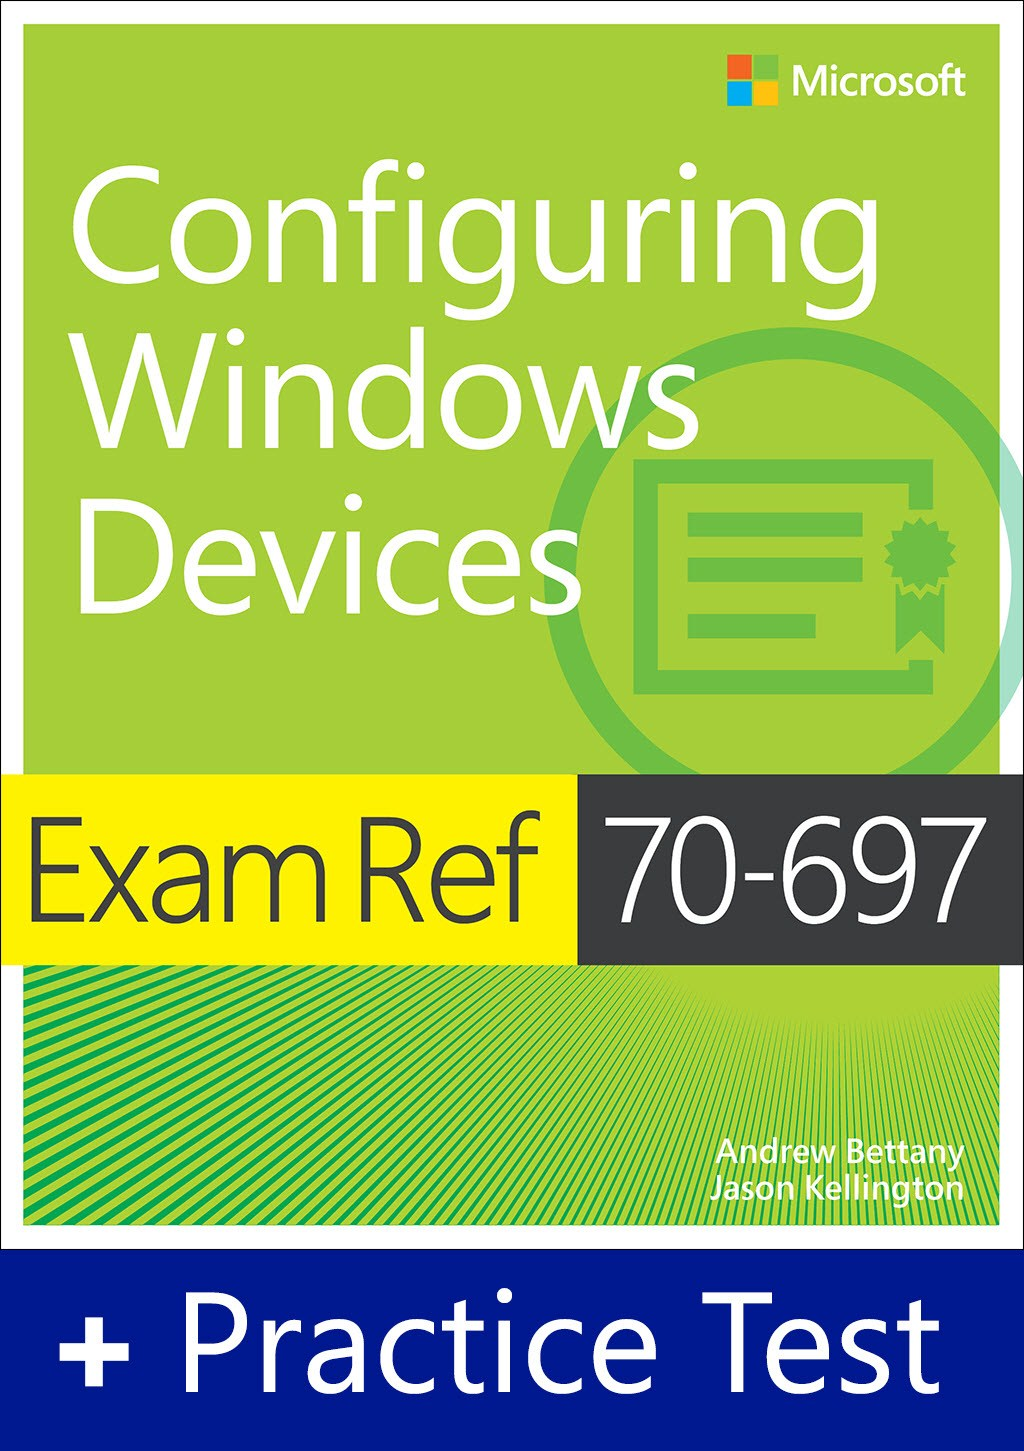 Exam Ref 70-697 Configuring Windows Devices with Practice Test